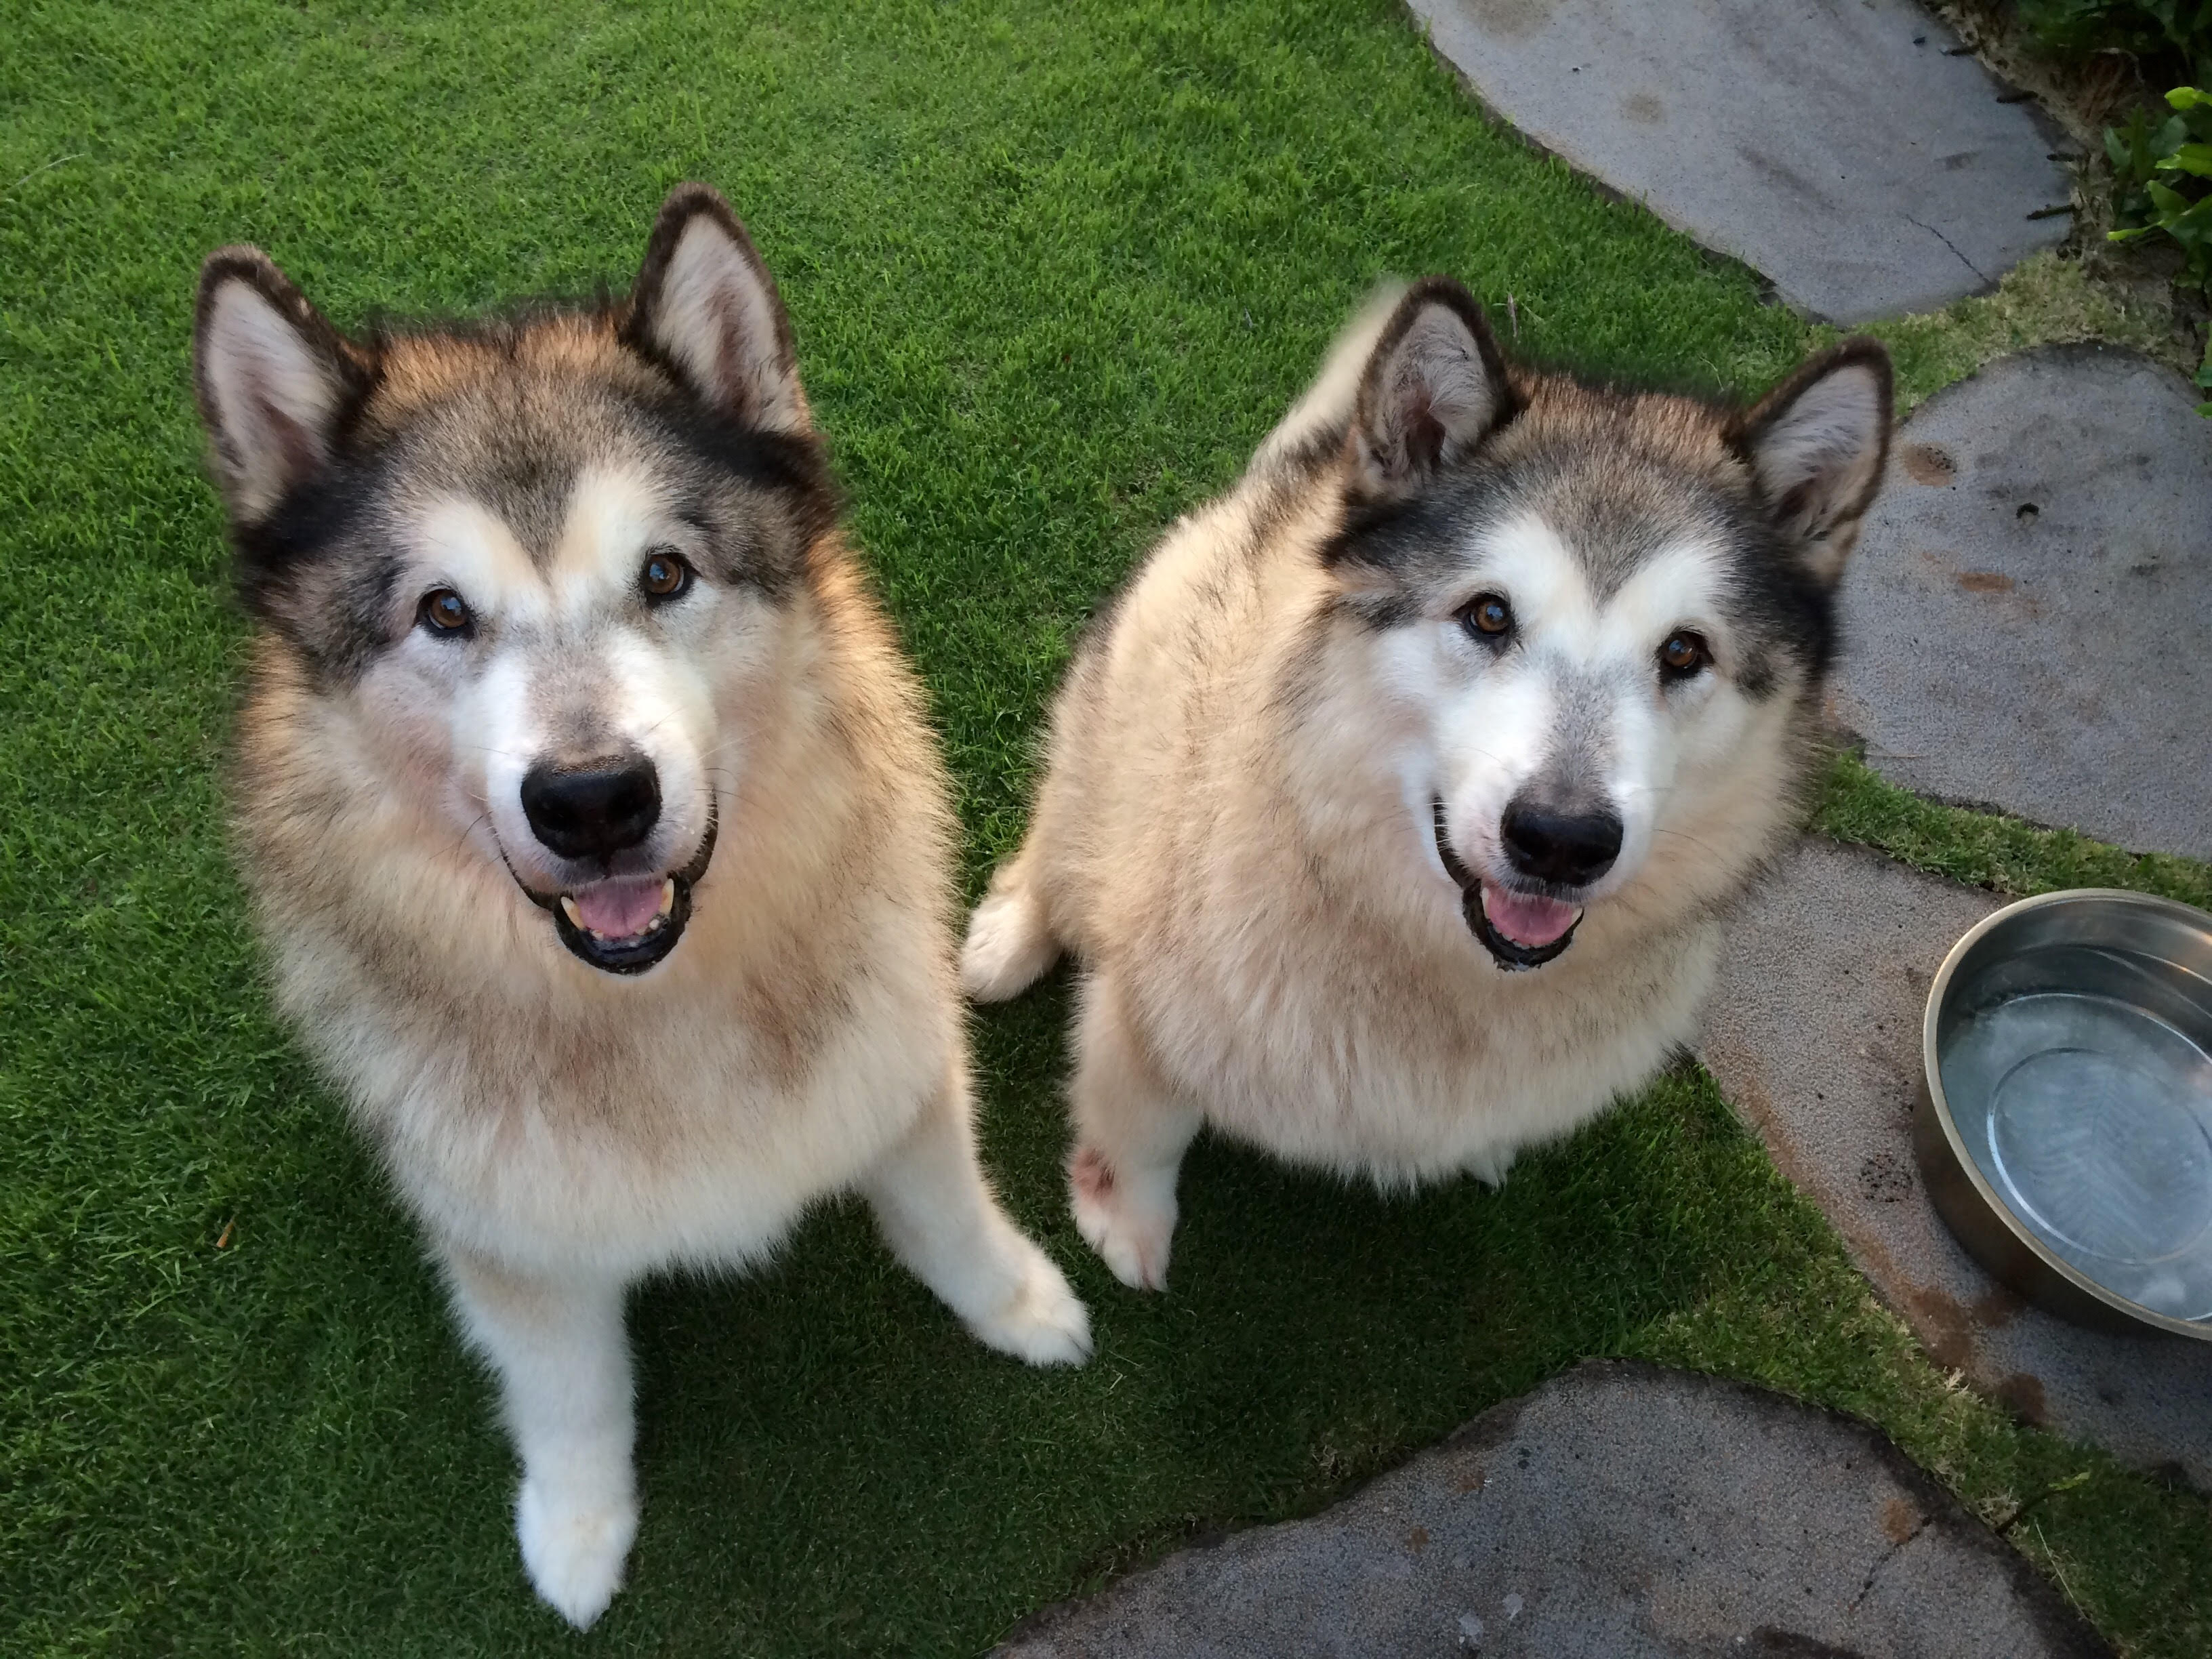 Pet sitting: Koko and Kaia